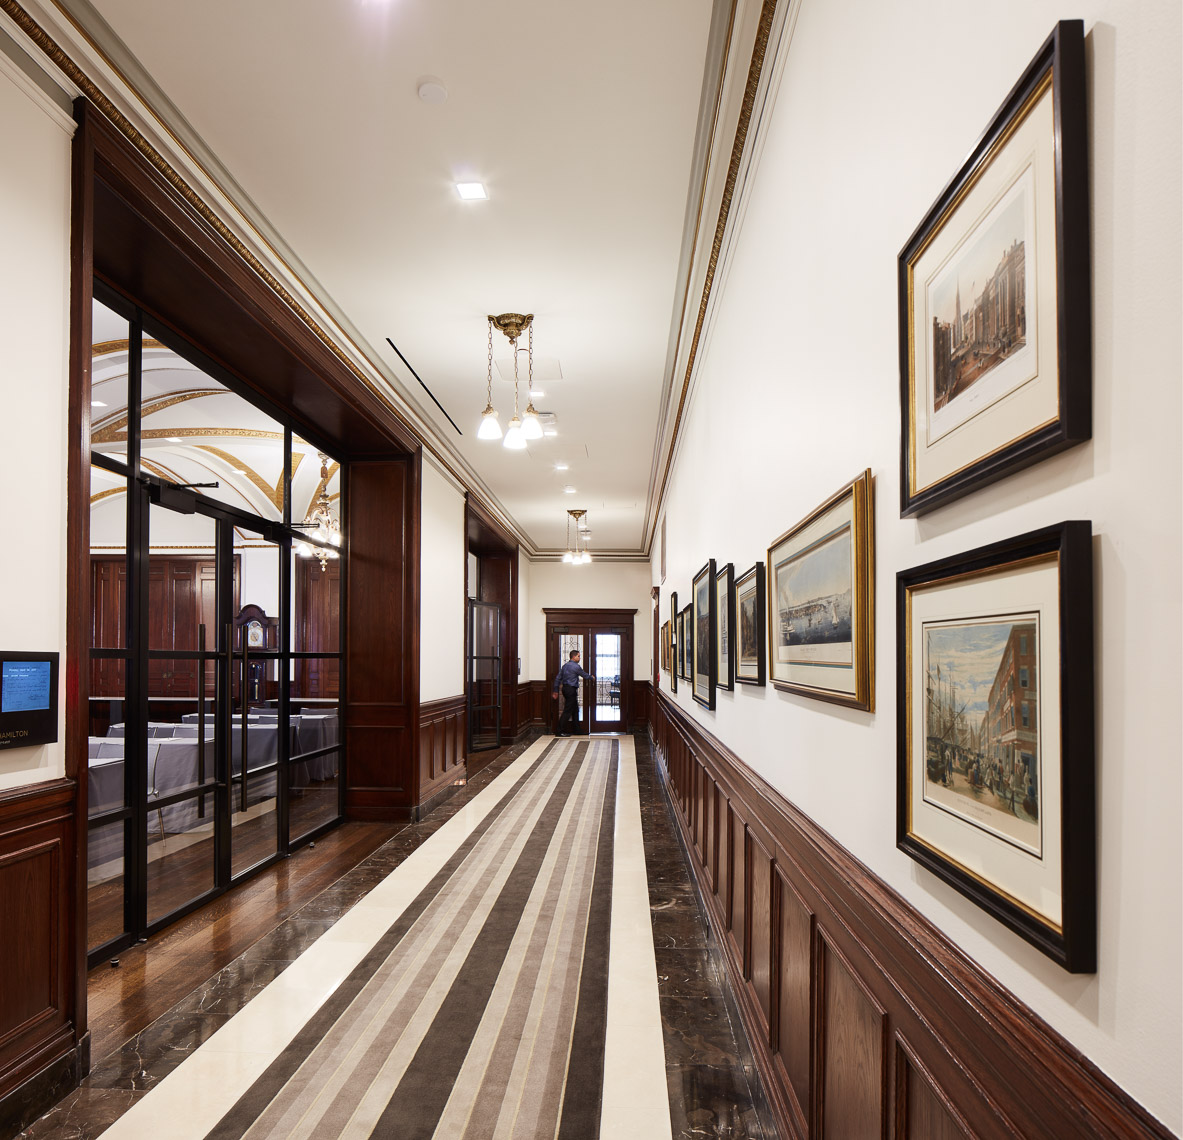 Long wood paneled hallway with historical photographs on wall